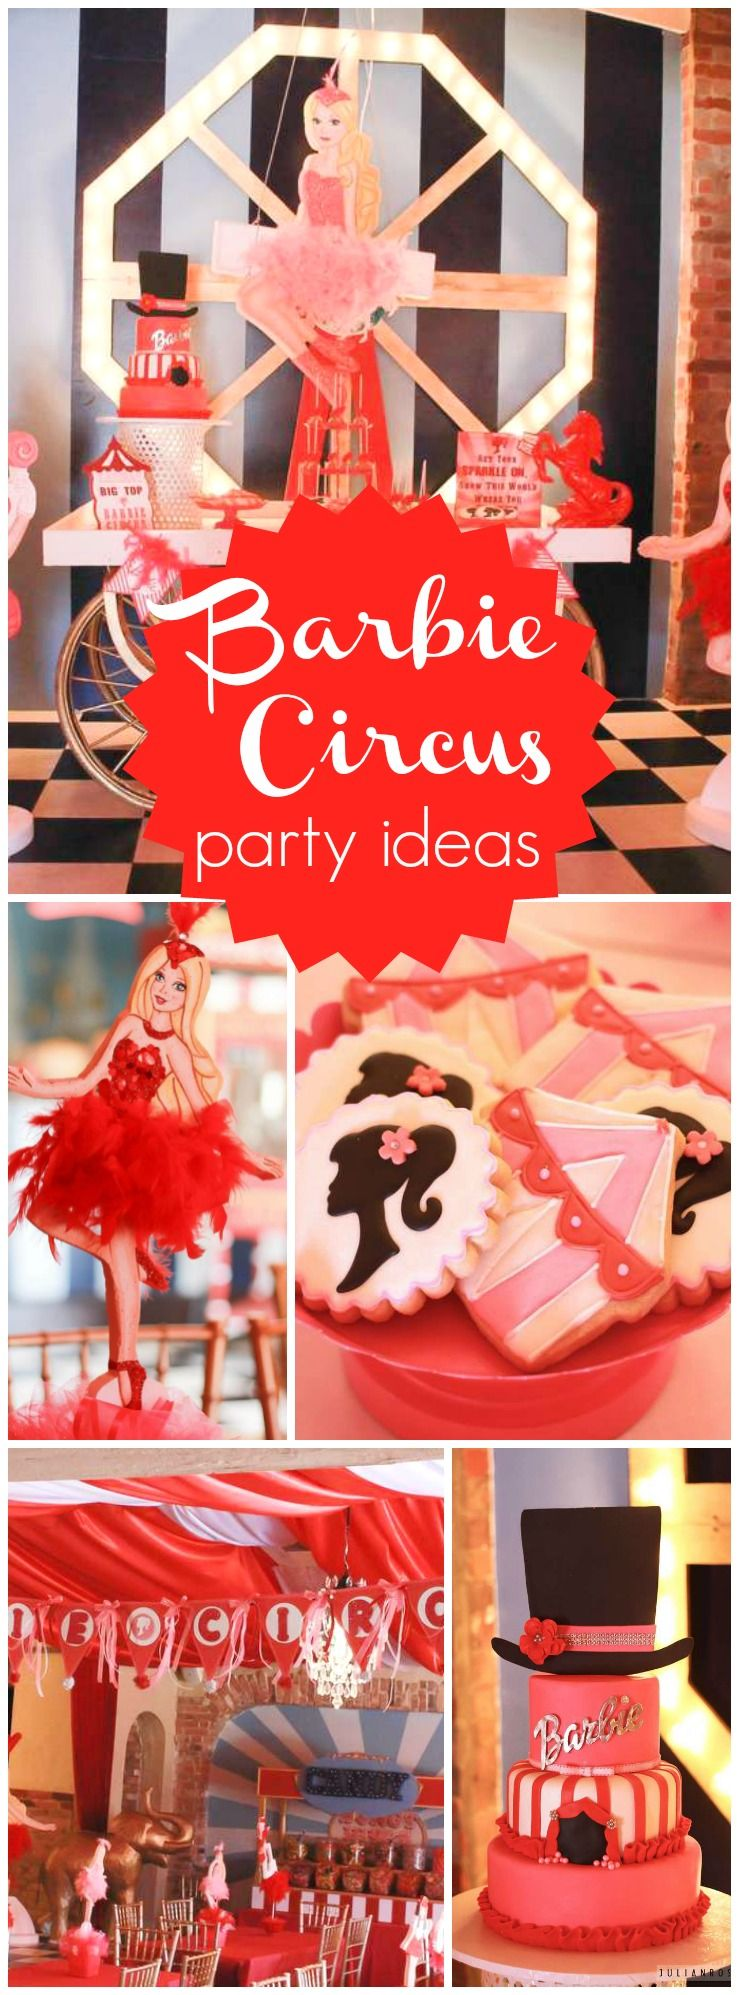 You have to see this Barbie circus party with lots of glitz and glam!  See more party ideas at CatchMyParty.com!